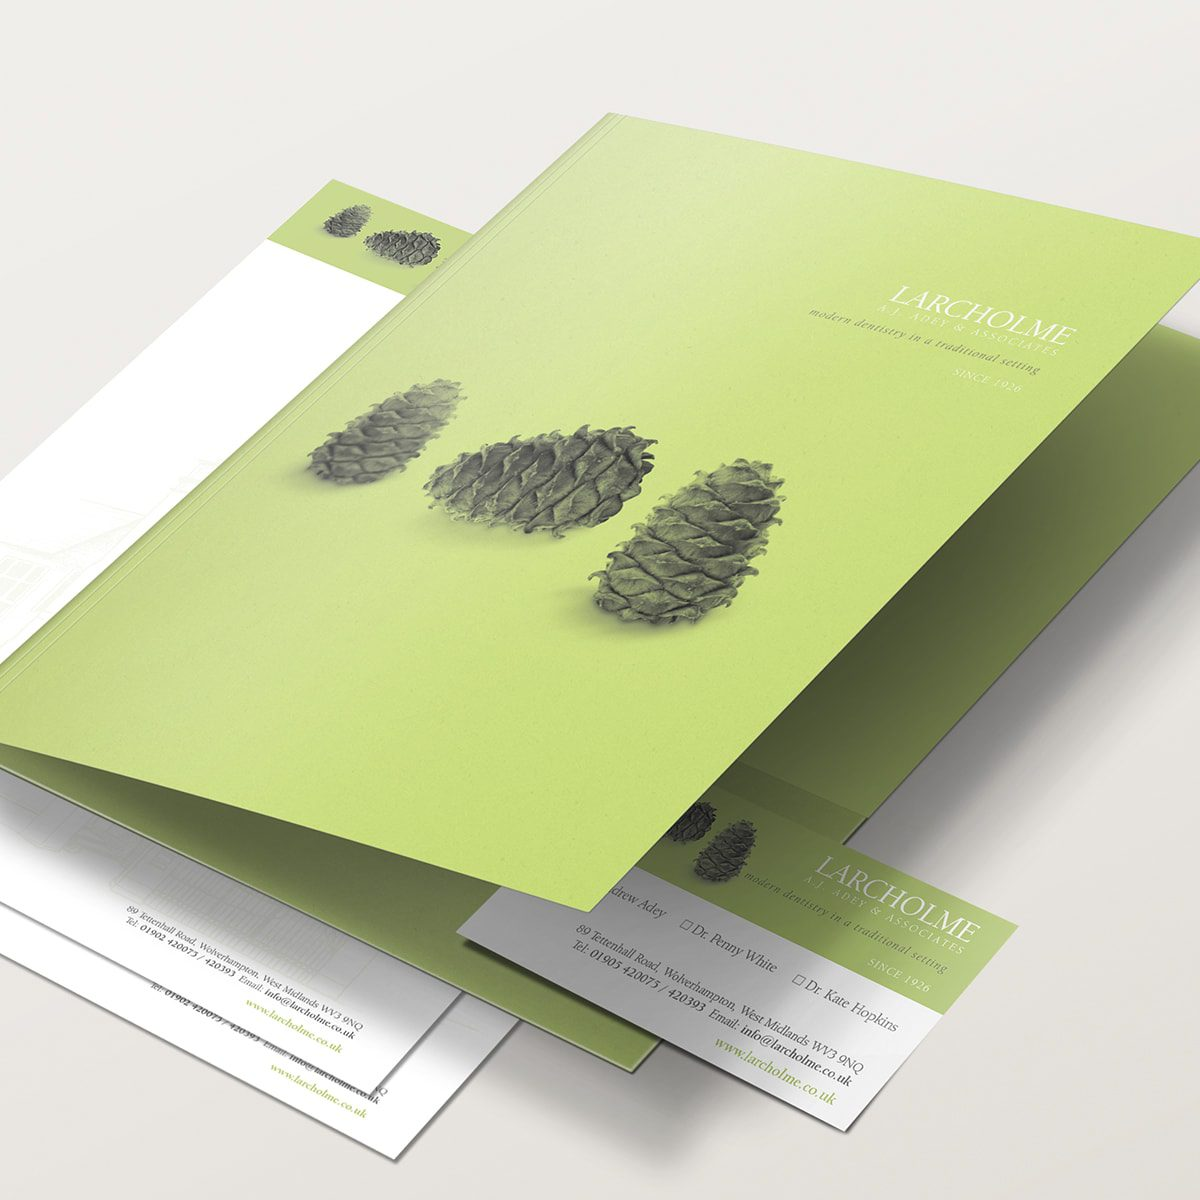 Larcholme Welcome Pack | Portfolio | Blackberry Design